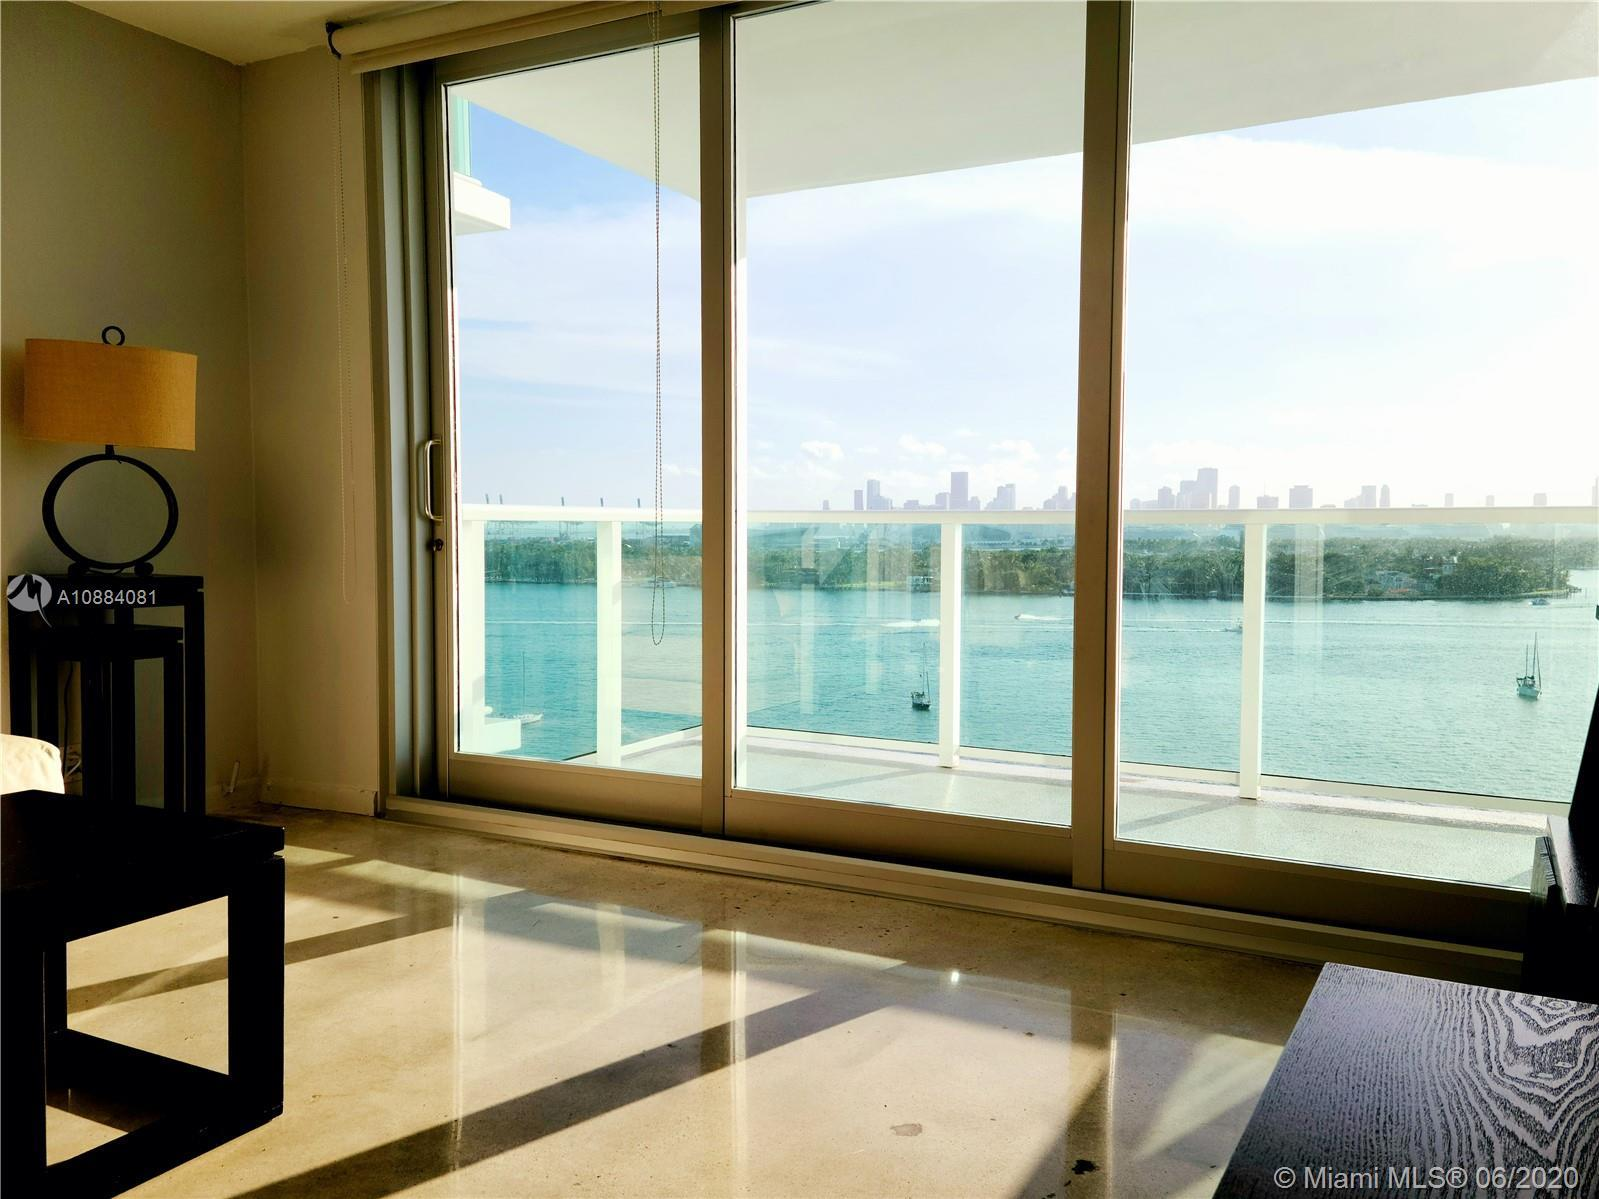 Direct Bay-front 850 sf  one bedroom with unobstructed stunning bay and downtown Miami Views! Priced